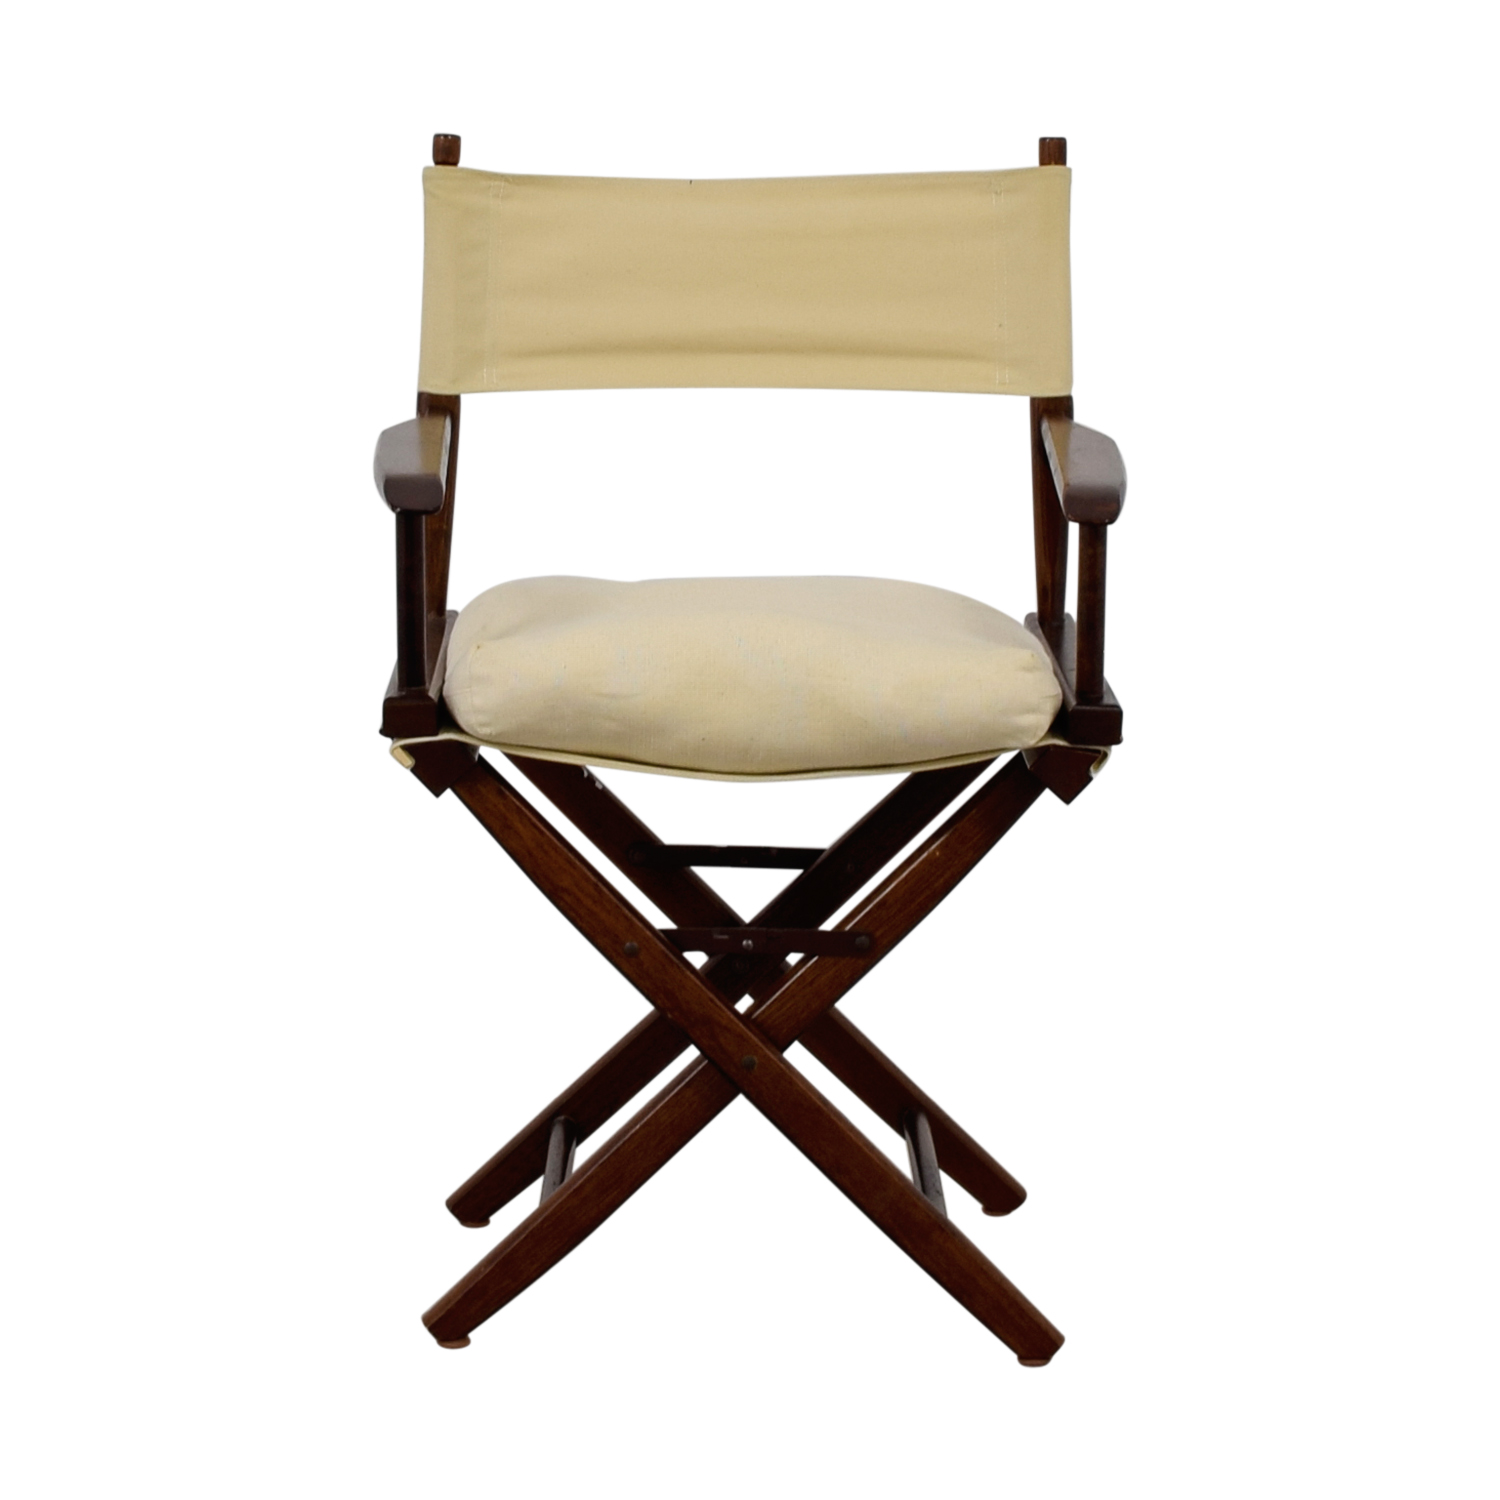 shop Pier 1 Pier 1 Director Chair online